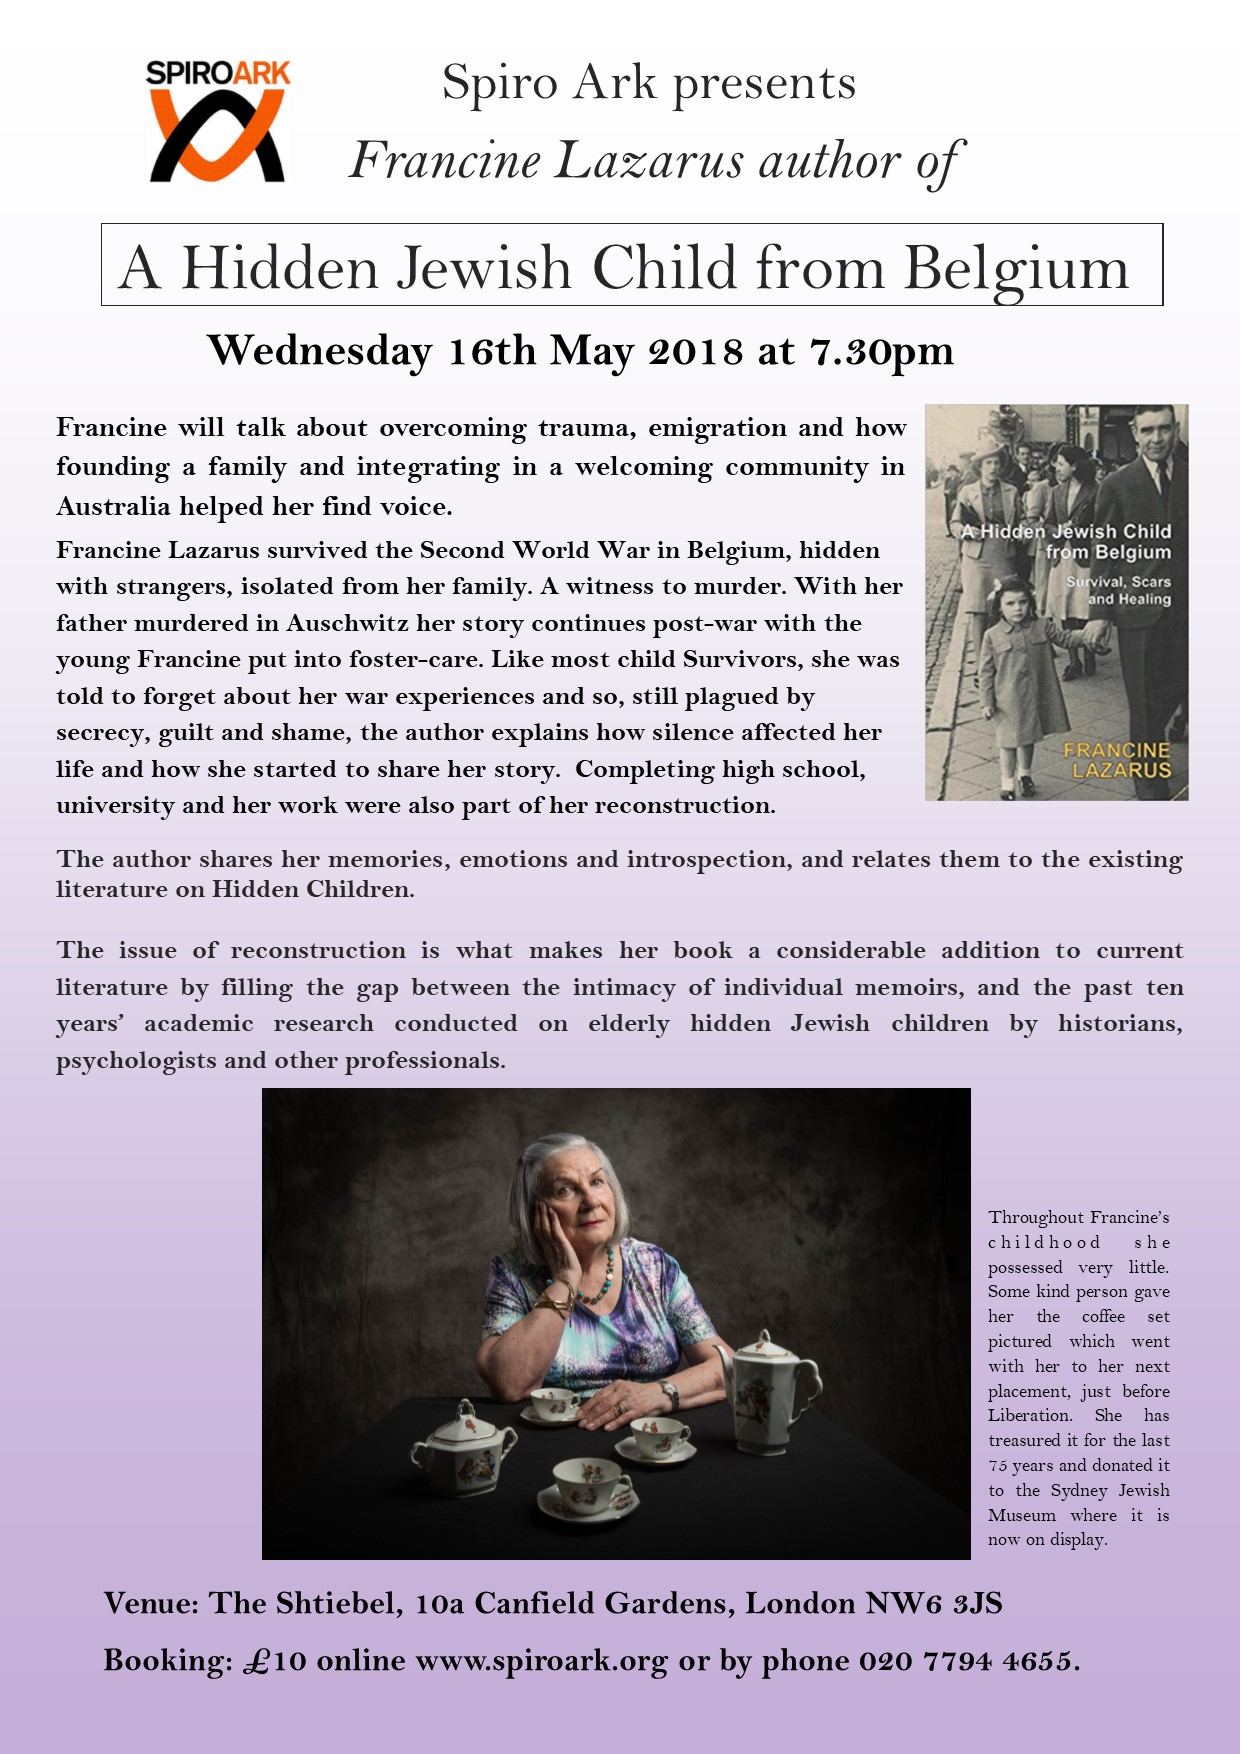 Book launch: A Hidden Jewish Child from Belgium